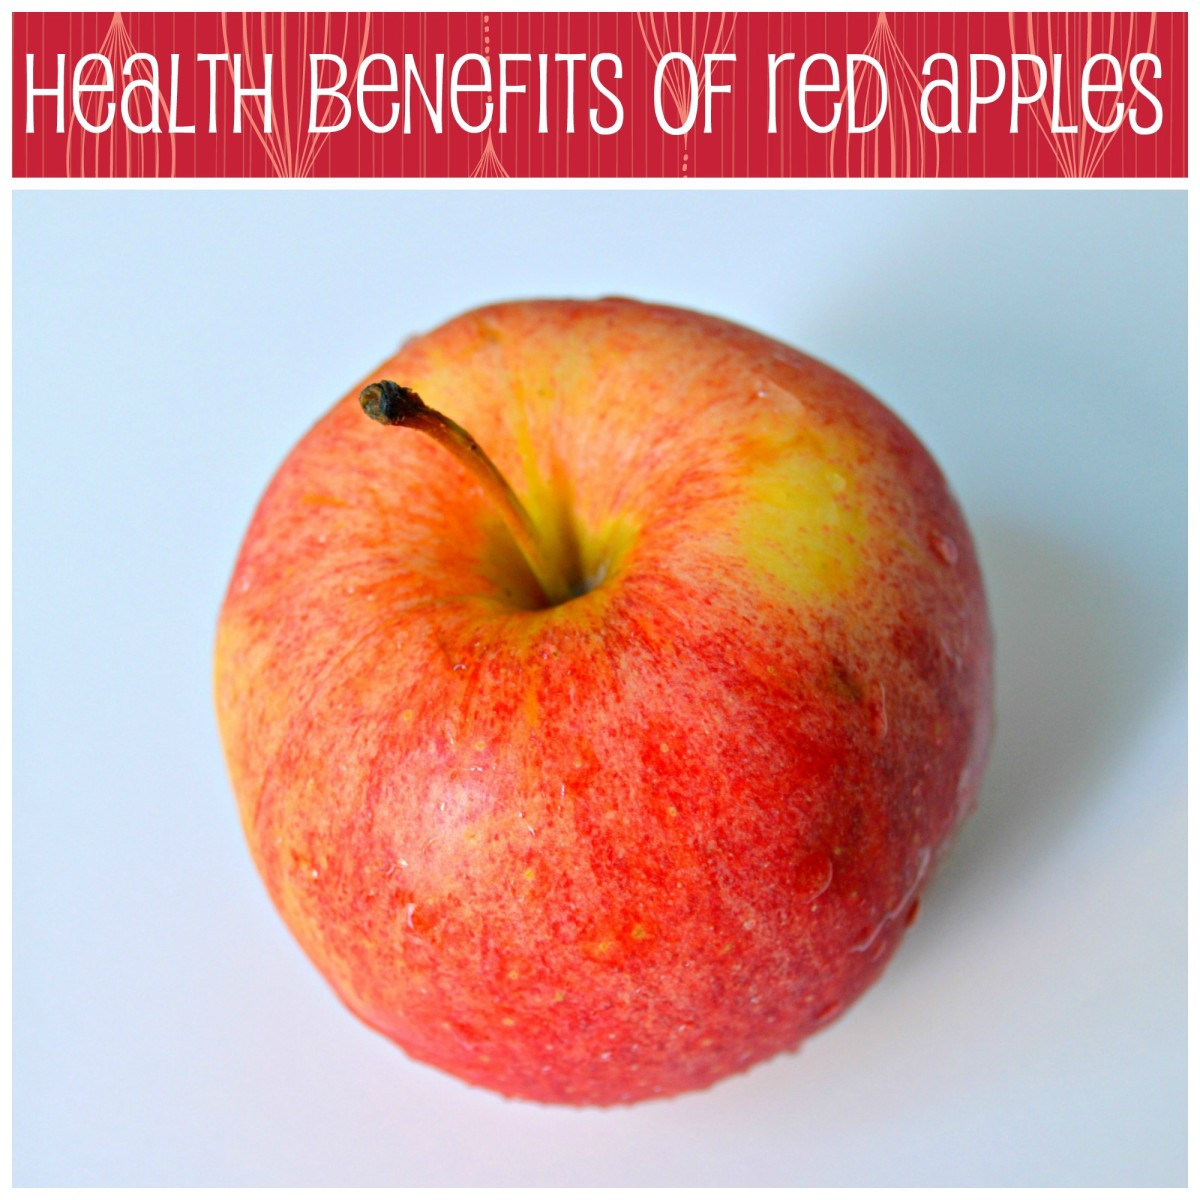 health benefits of red apples caloriebee